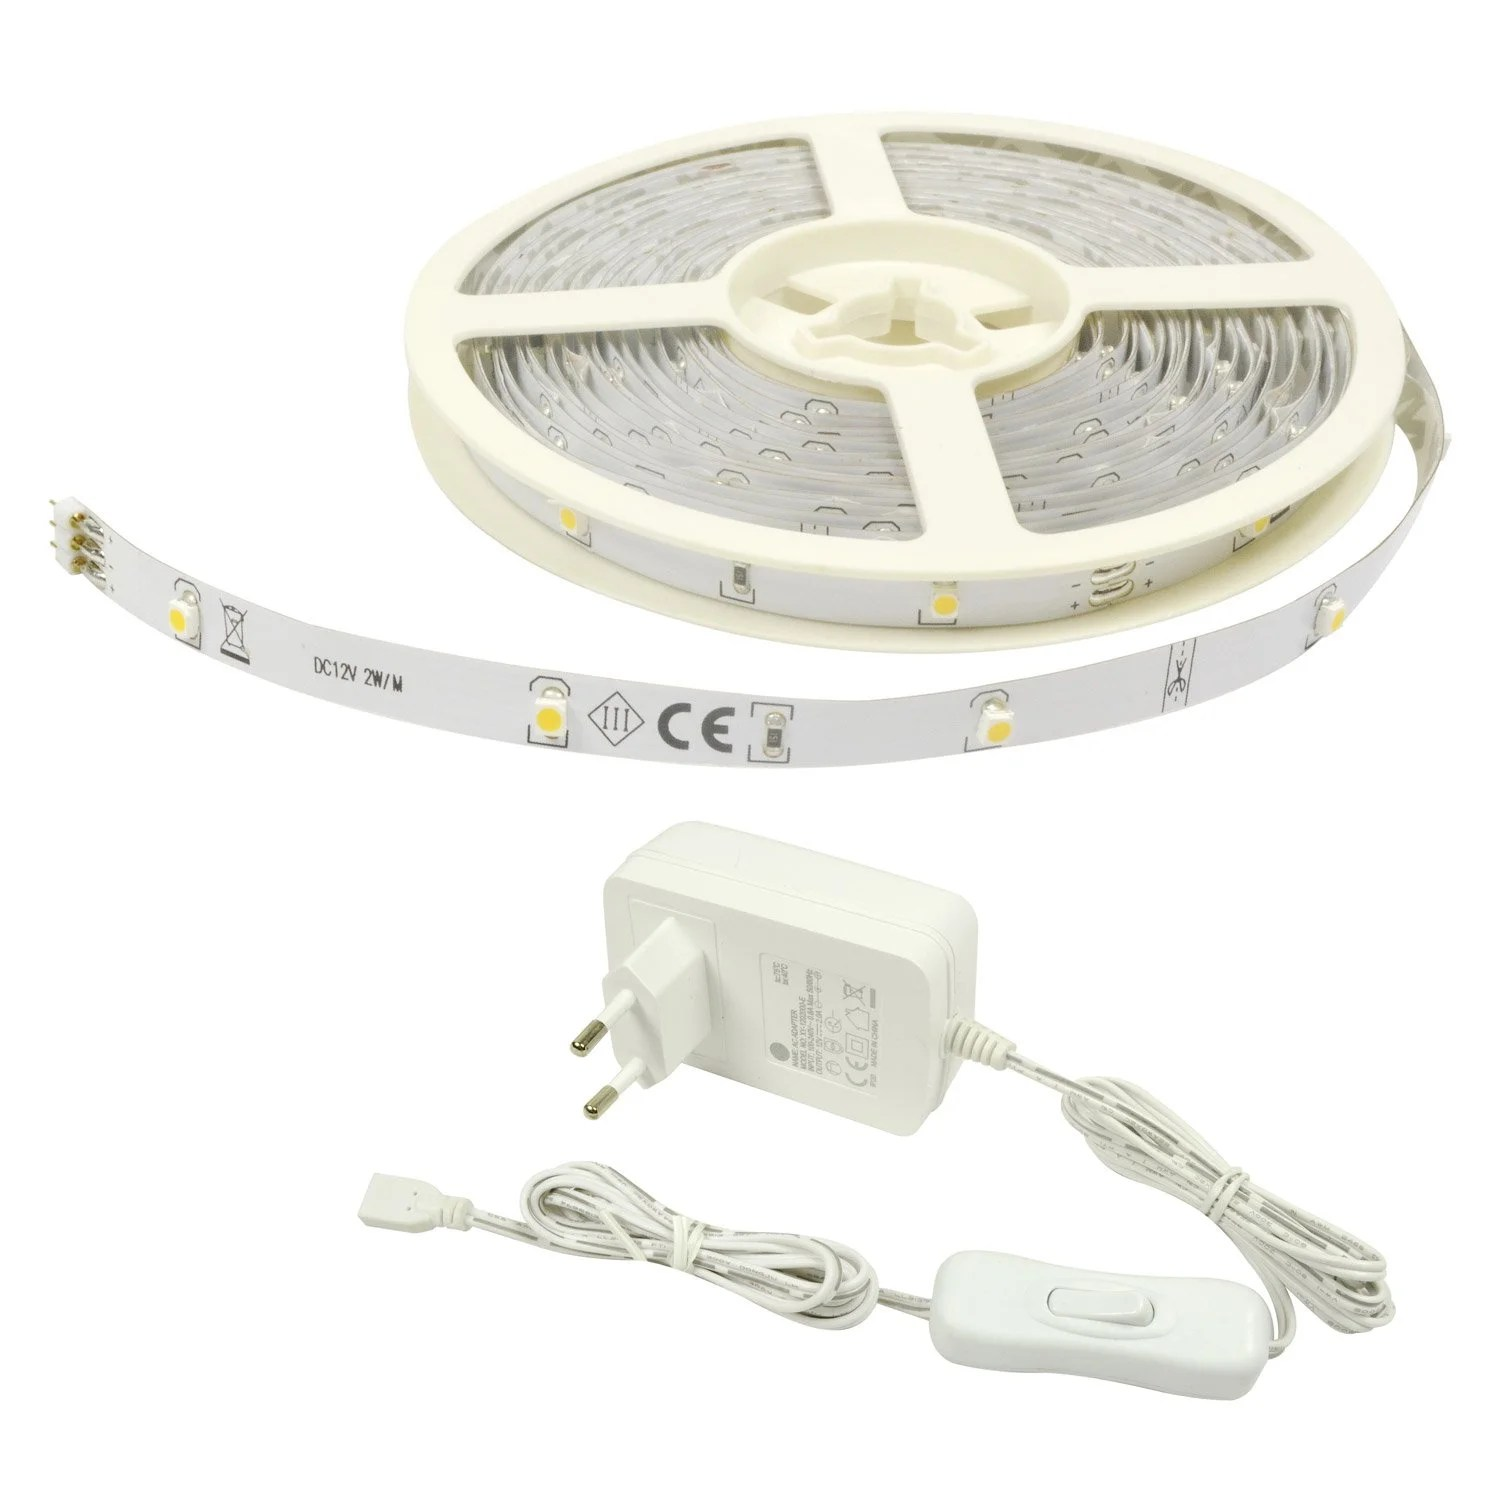 Ruban Led Leroy Merlin Kit Ruban Led Flexled Led 1 X 12 W Led Intégrée Blanc